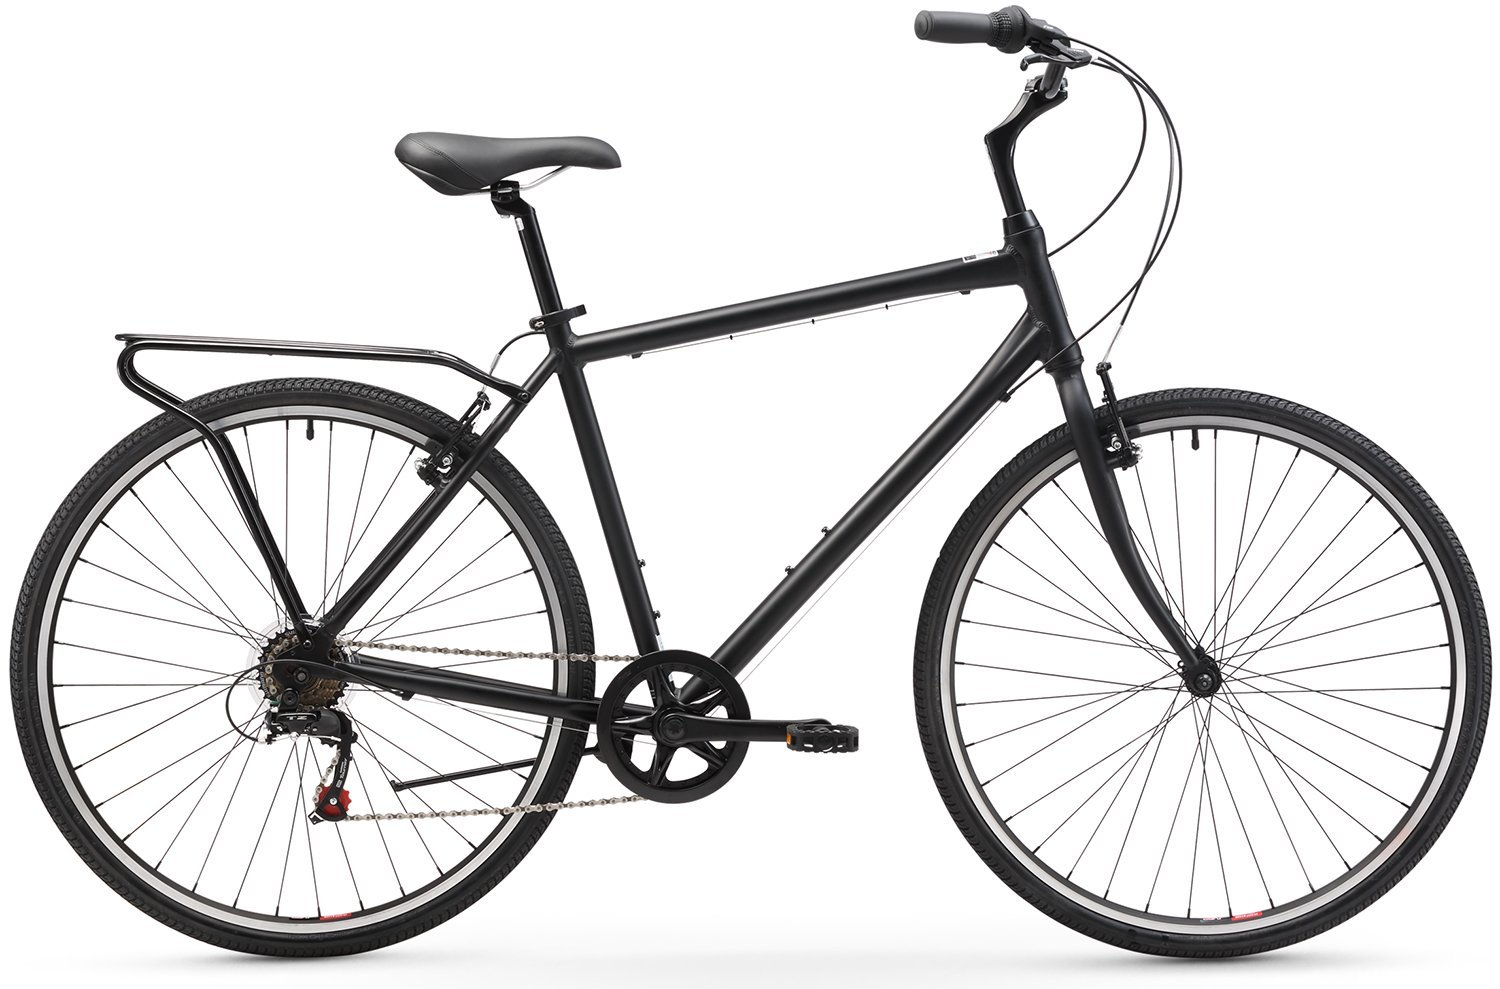 Men's 7-Speed Hybrid Commuter Bicycle, 20-Inch Frame 700C Wheels